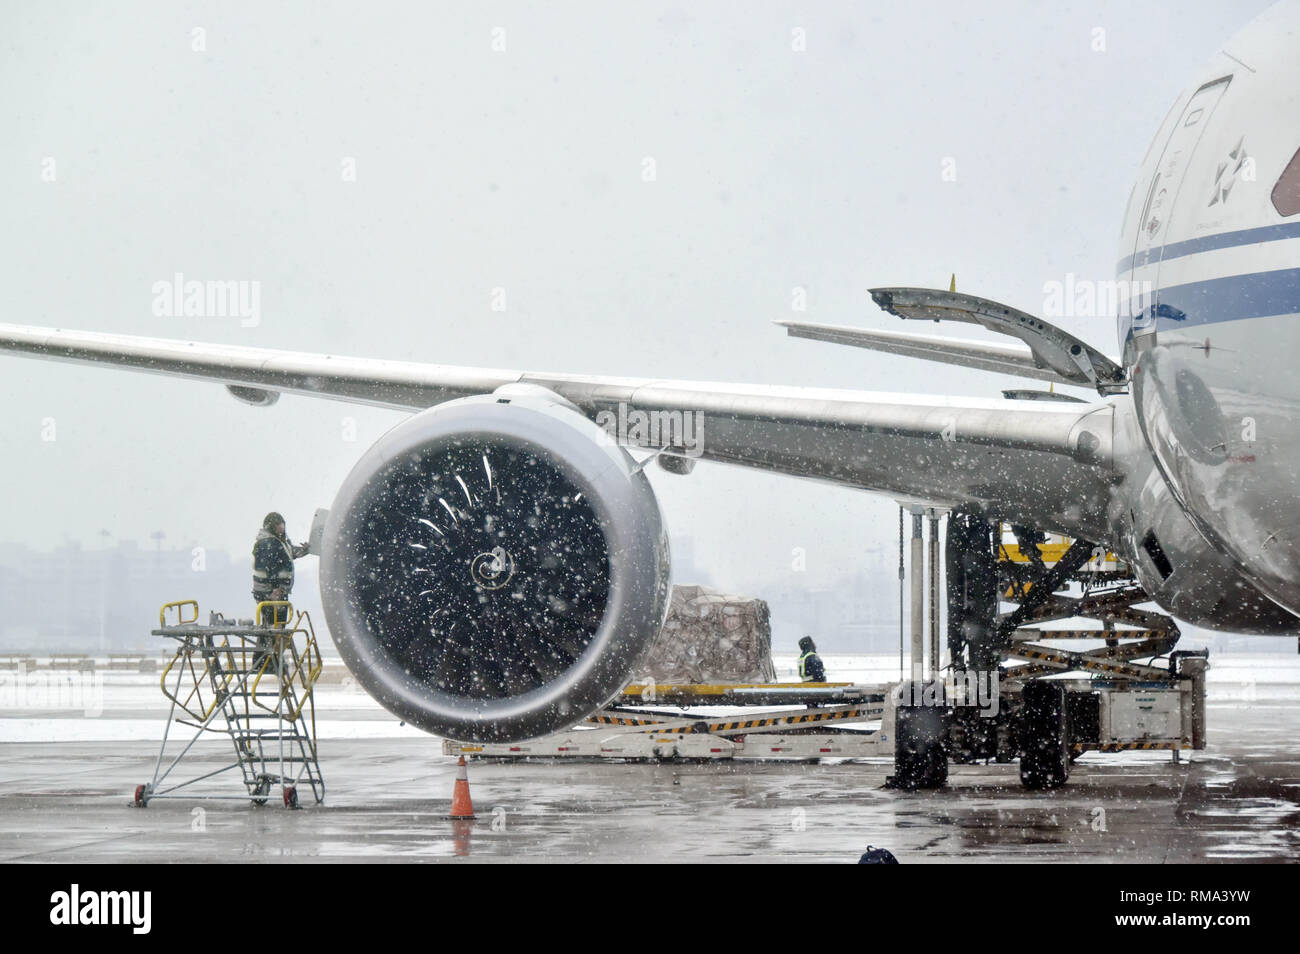 Beijing, China. 14th Feb, 2019. A staff member works during a preflight check in snow at the Beijing Capital International Airport in Beijing, capital of China, Feb. 14, 2019. Some flights of the airport were delayed or cancelled due to the snowfall on Thursday. Credit: Xinhua/Alamy Live News - Stock Image